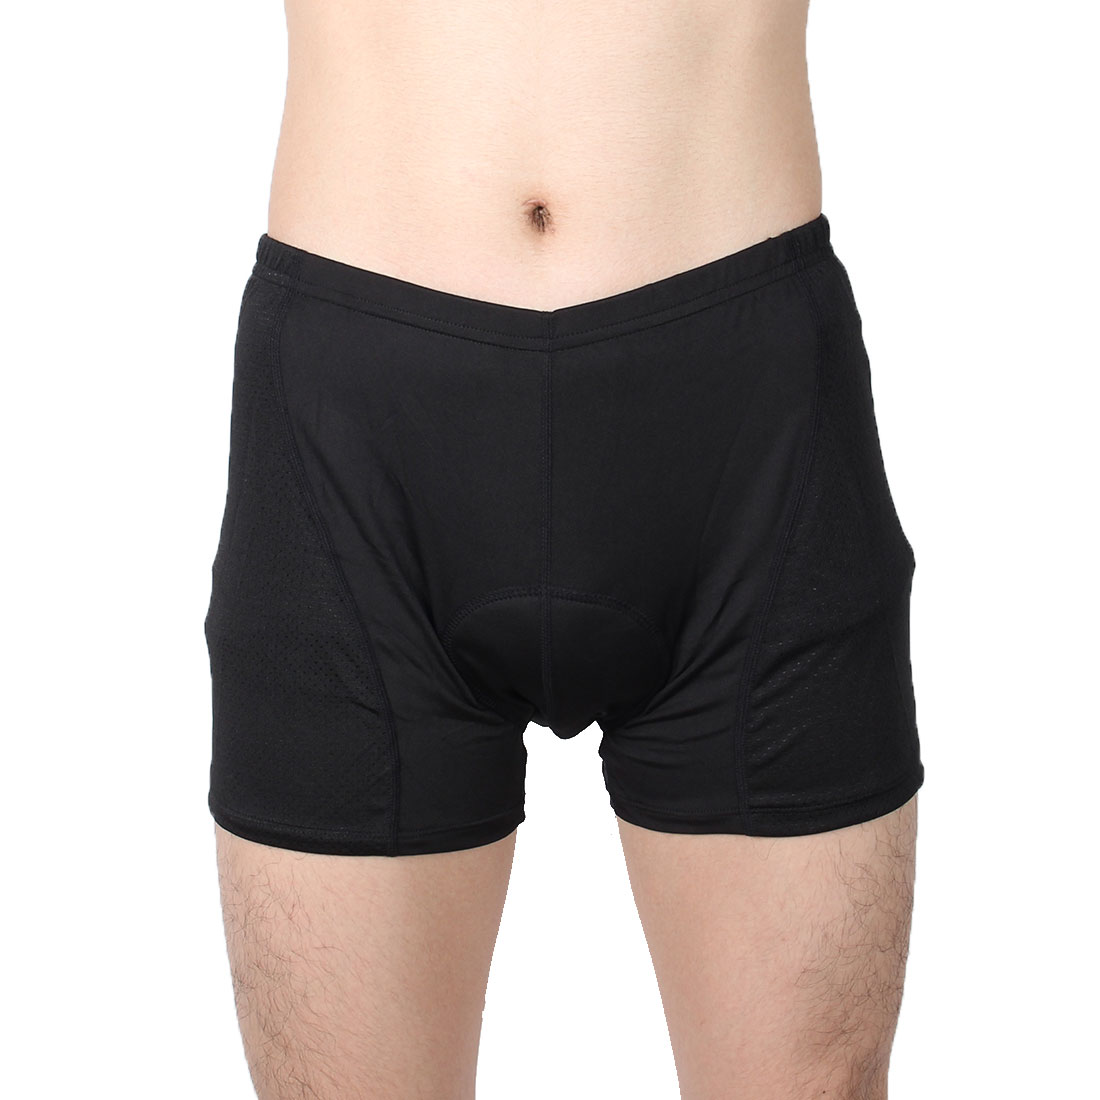 Men Polyester 3D Padded Outdoor Riding Bicycle Biking Underpants Cycling Shorts Black S